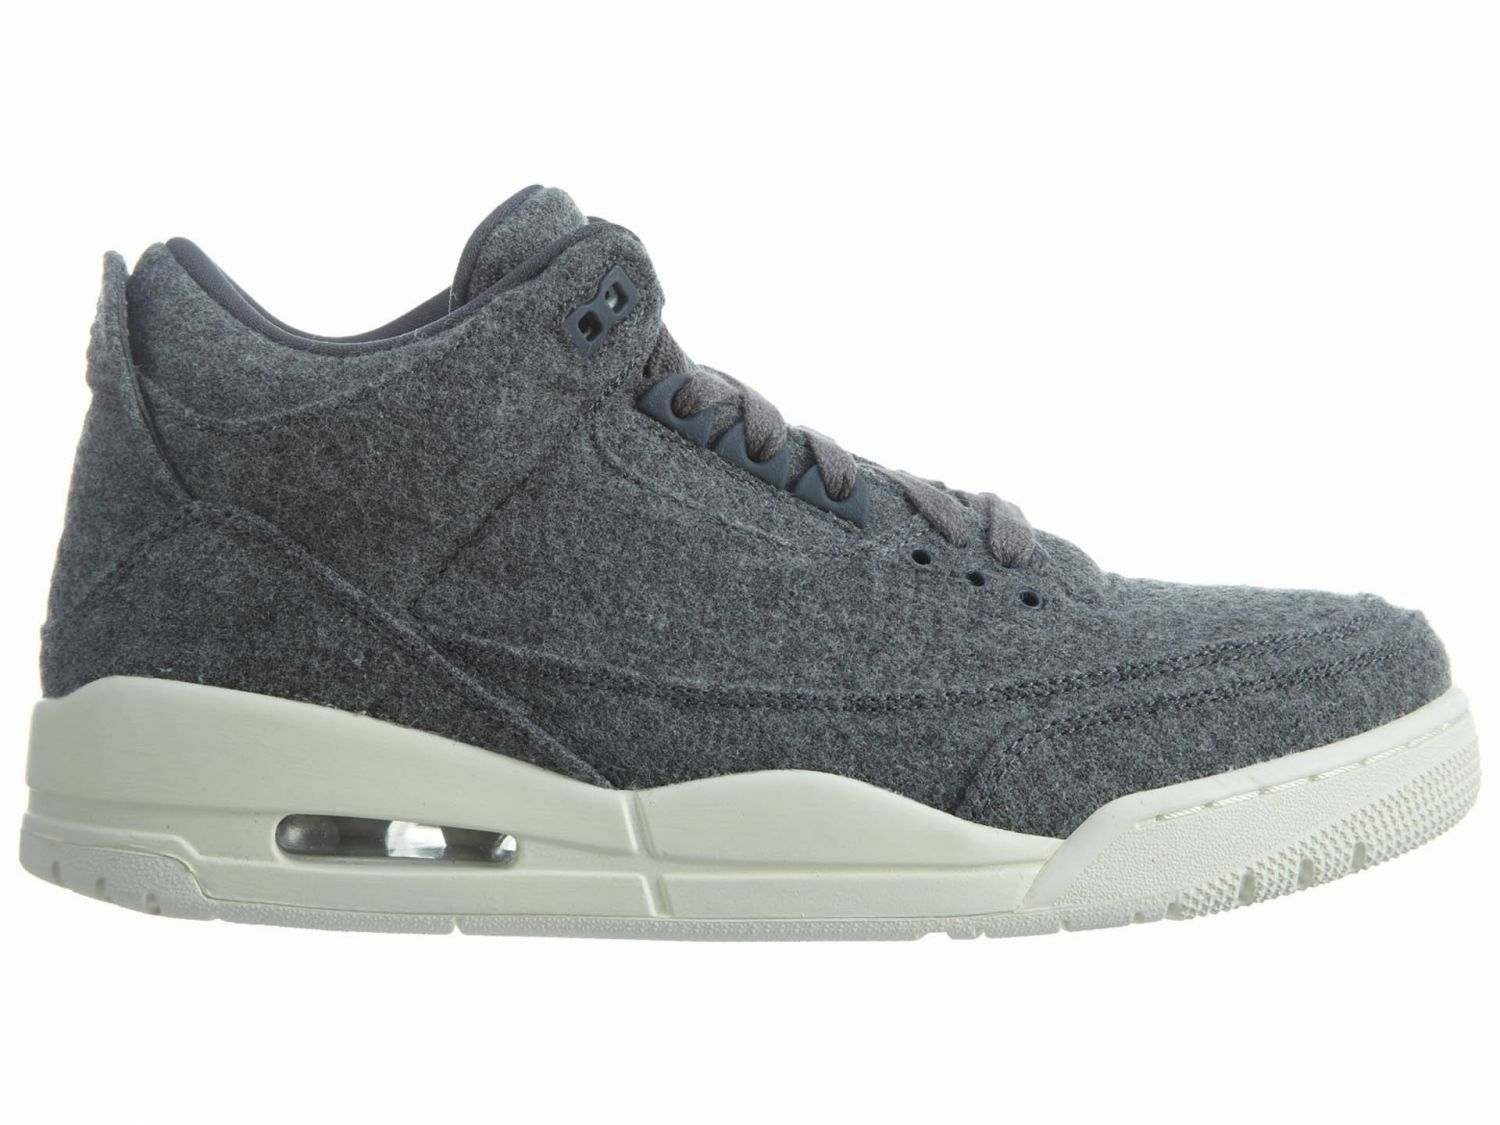 Air Jordan III 3 Retro Wool Mens 854263-004 Dark Grey Basketball Shoes Size 10